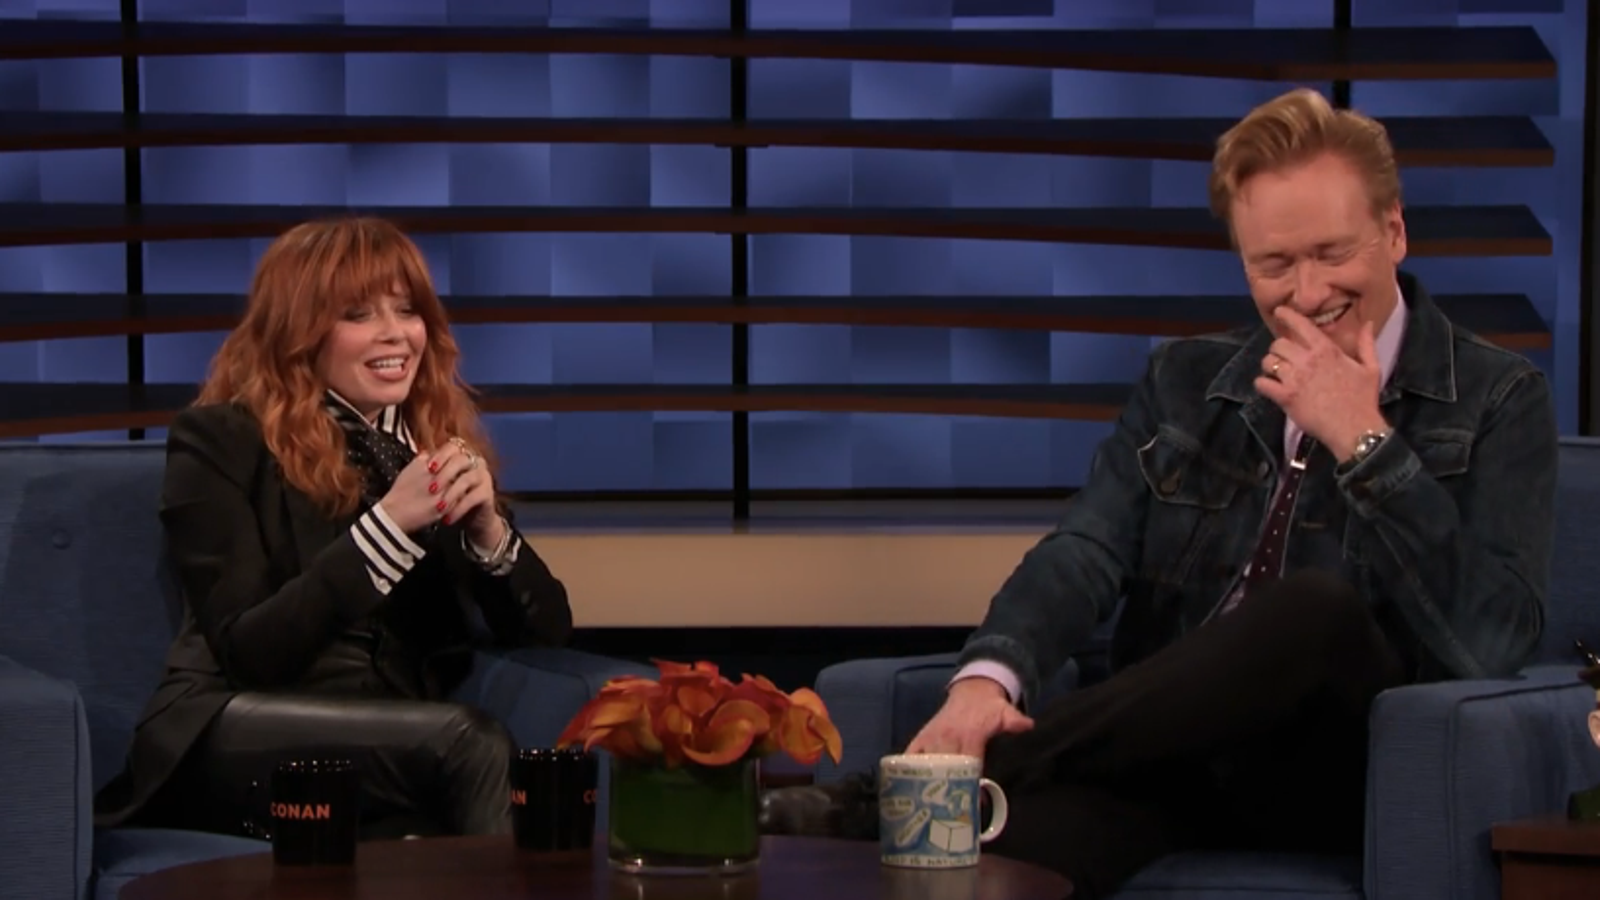 Natasha Lyonne has Conan in stitches dissing her Emmy chances